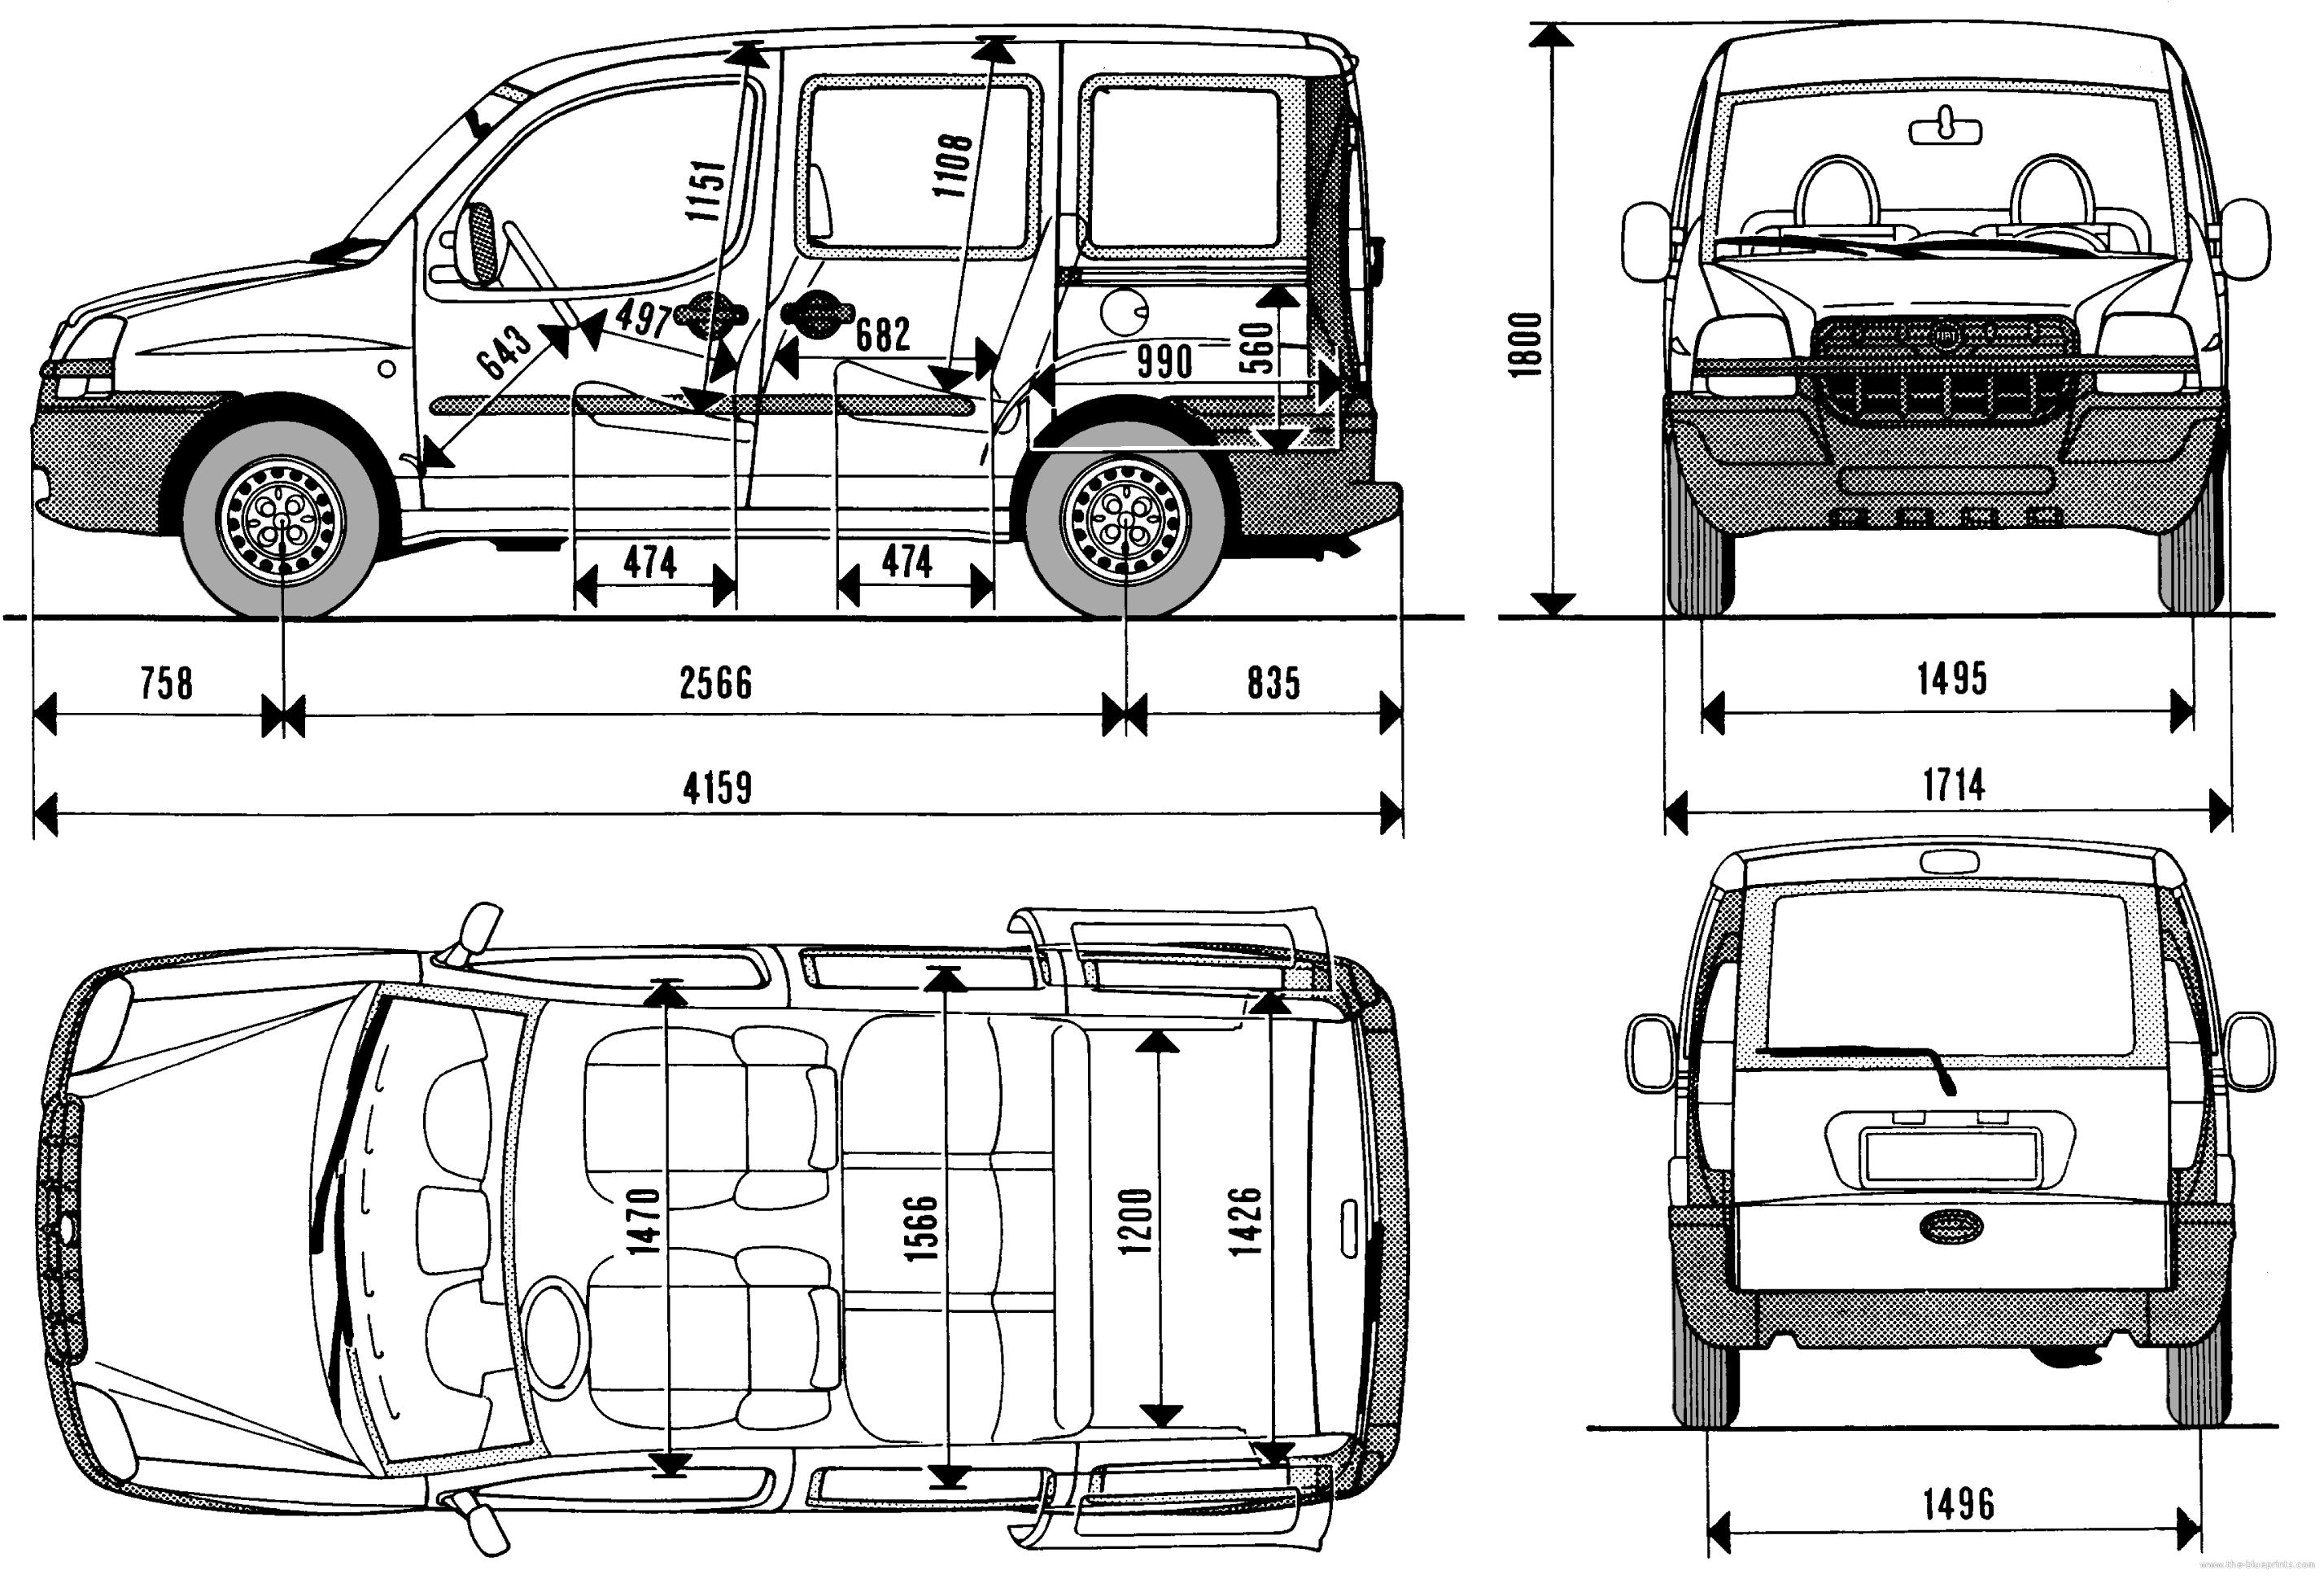 fiat panda interior with Fiat Doblo  2001 on Desenhos Revelam O Fiat Panda 2012 further Car Instrument Panel Diagram together with 328568 Raining Relays Help likewise Golf 2 Old School 350z Dual Screen 26 in addition Rear Seat Rubber Mat And Plugs Fiat 600.